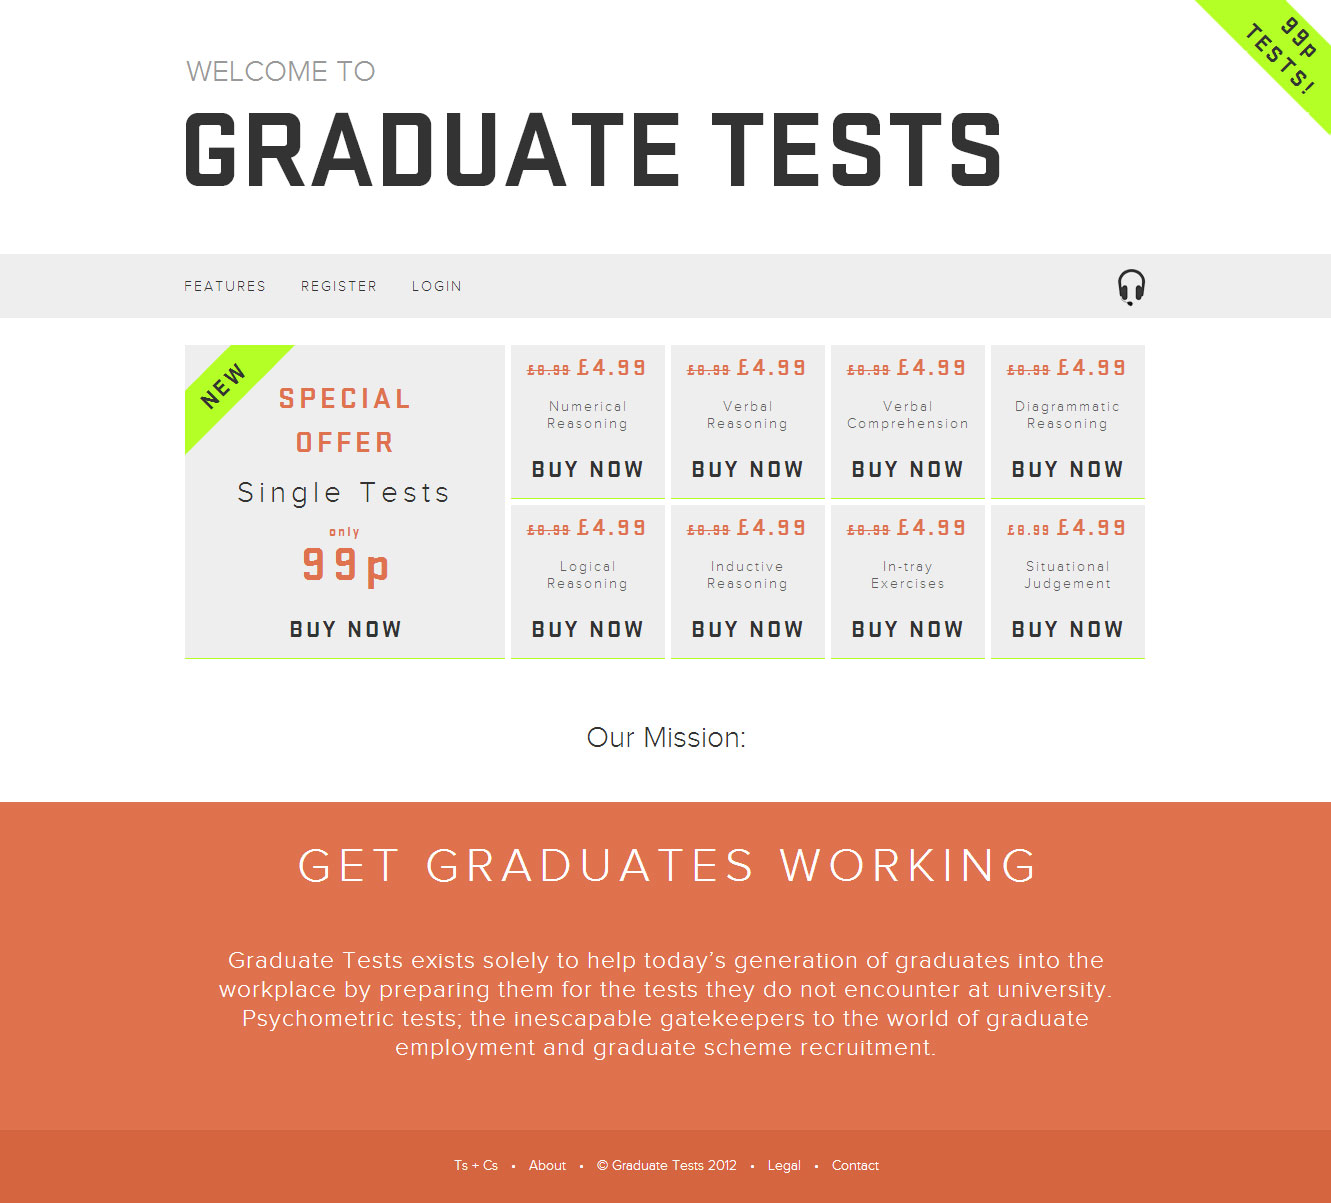 AssessmentDay (Graduate Tests website)